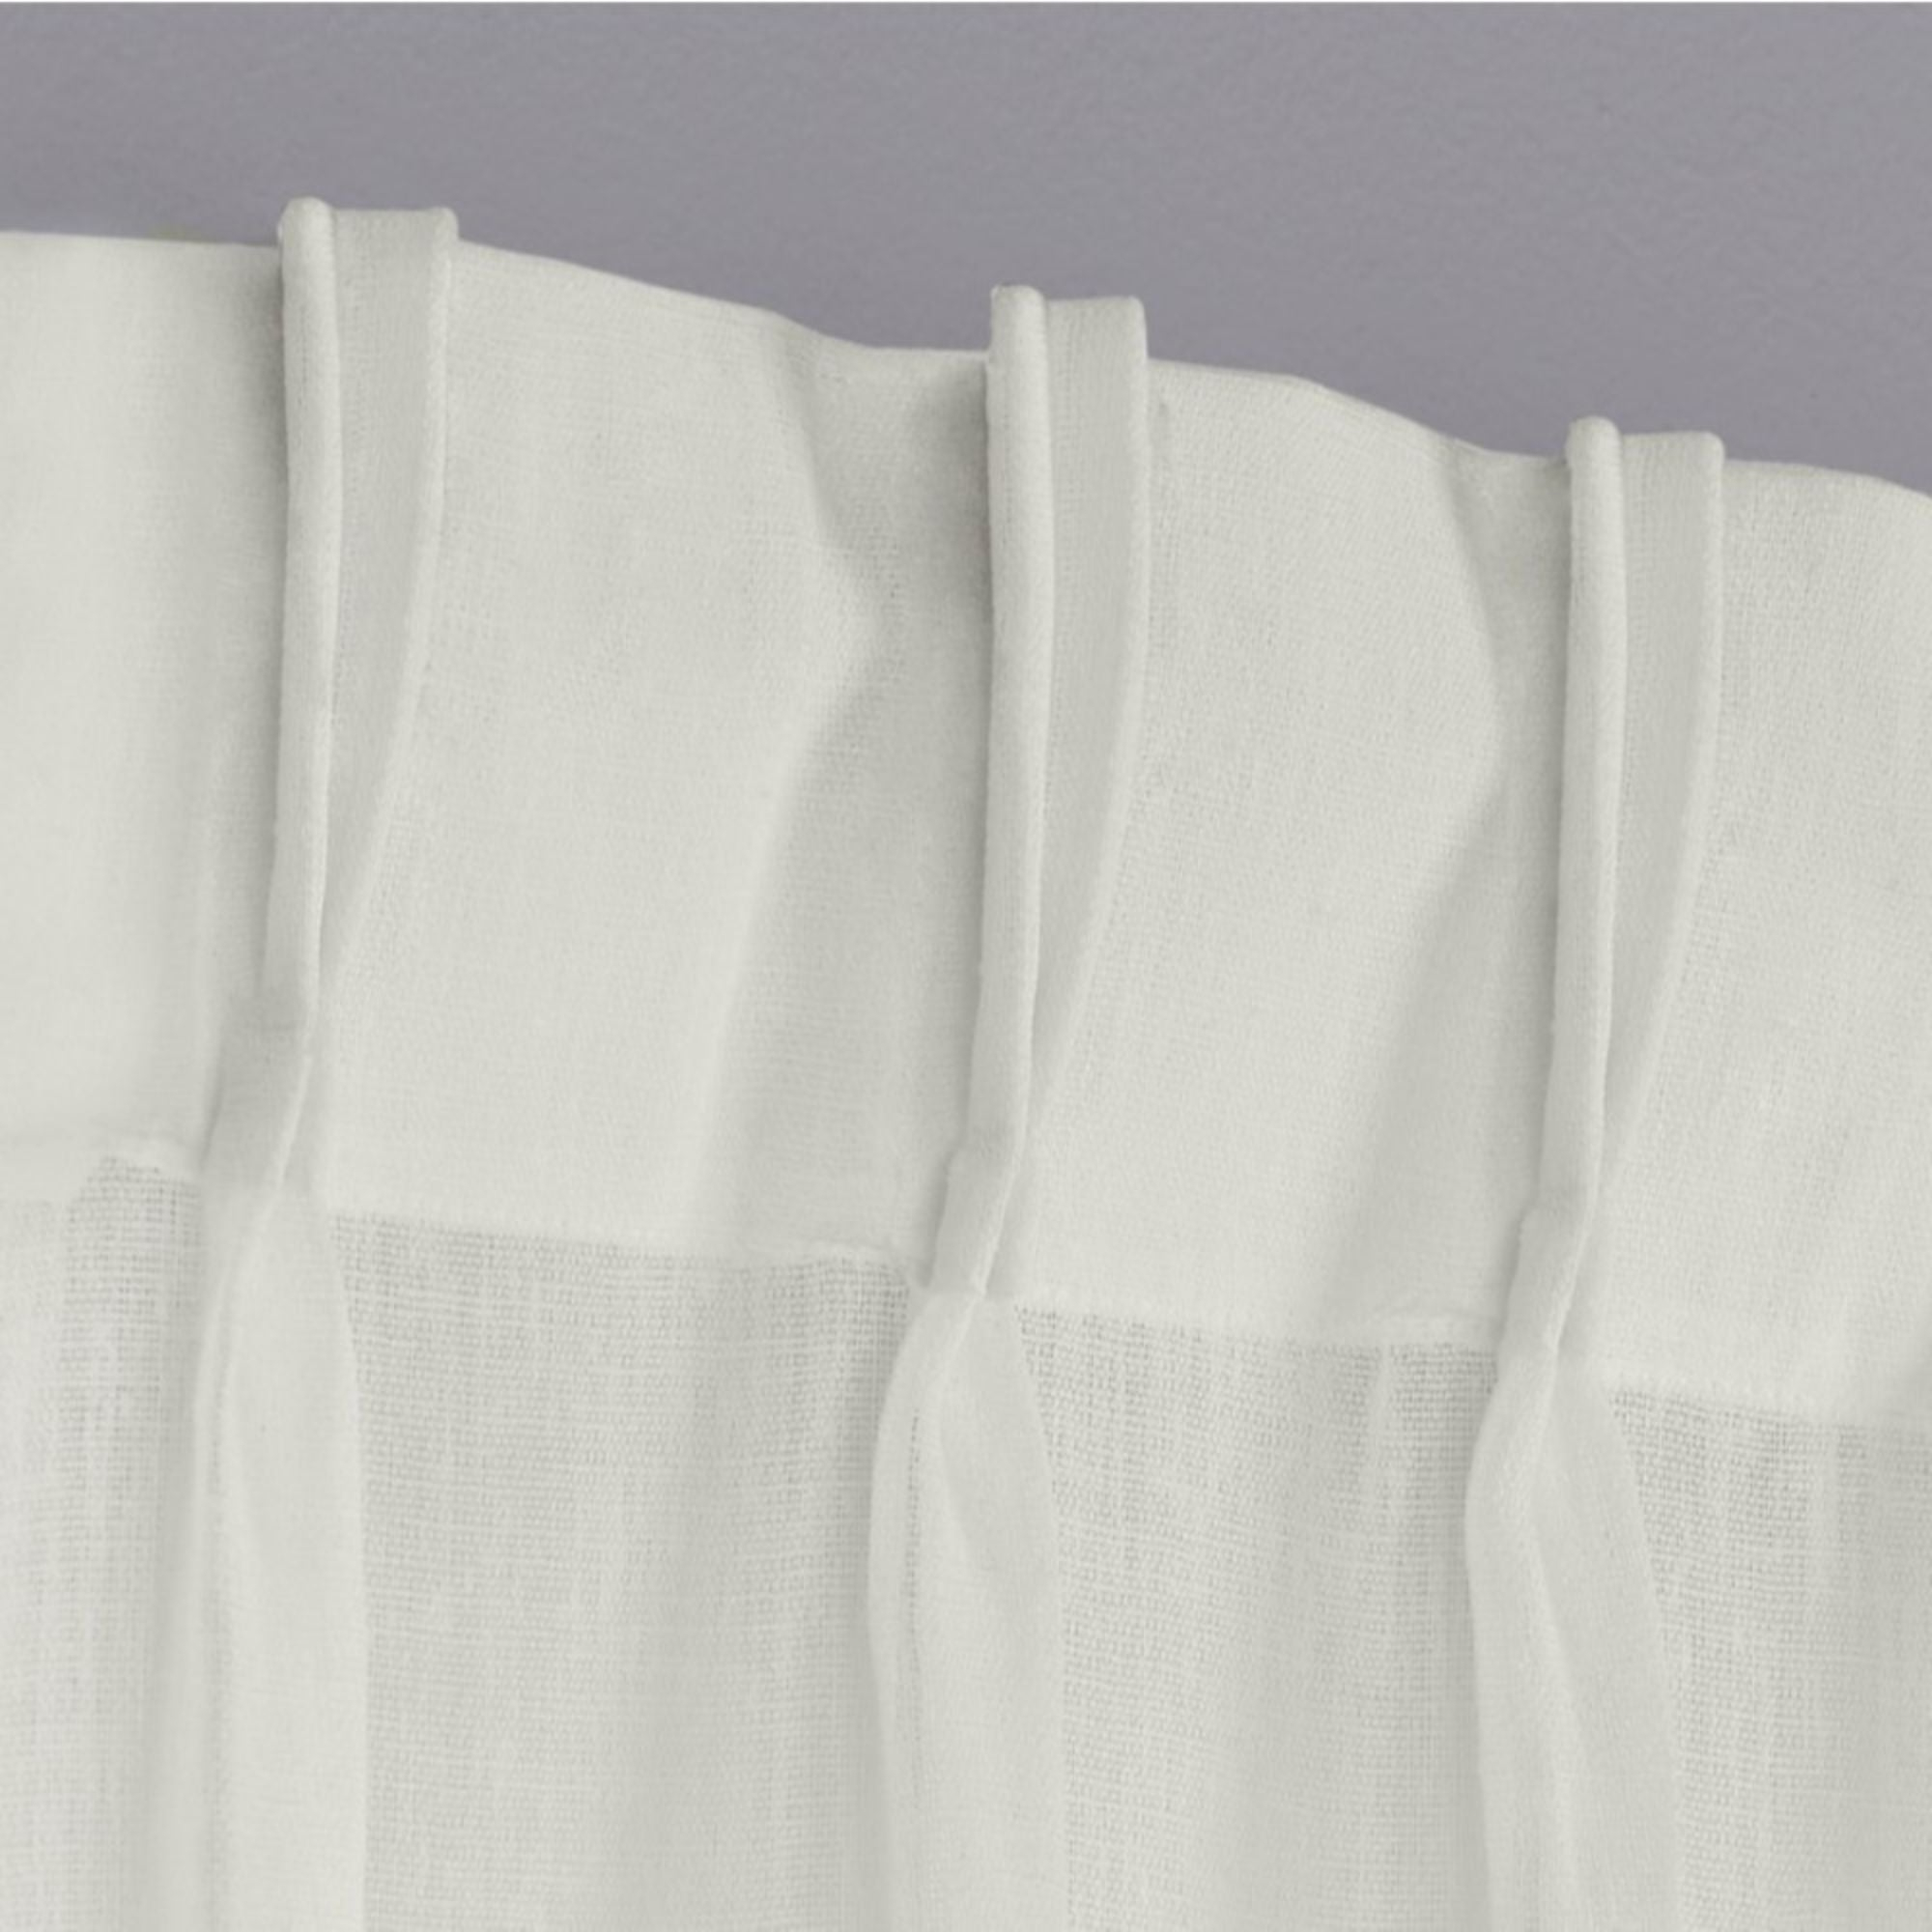 Details About Ati Home Belgian Jacquard Sheer Double Pinch Pleat Top Within Favorite Double Pinch Pleat Top Curtain Panel Pairs (View 9 of 20)